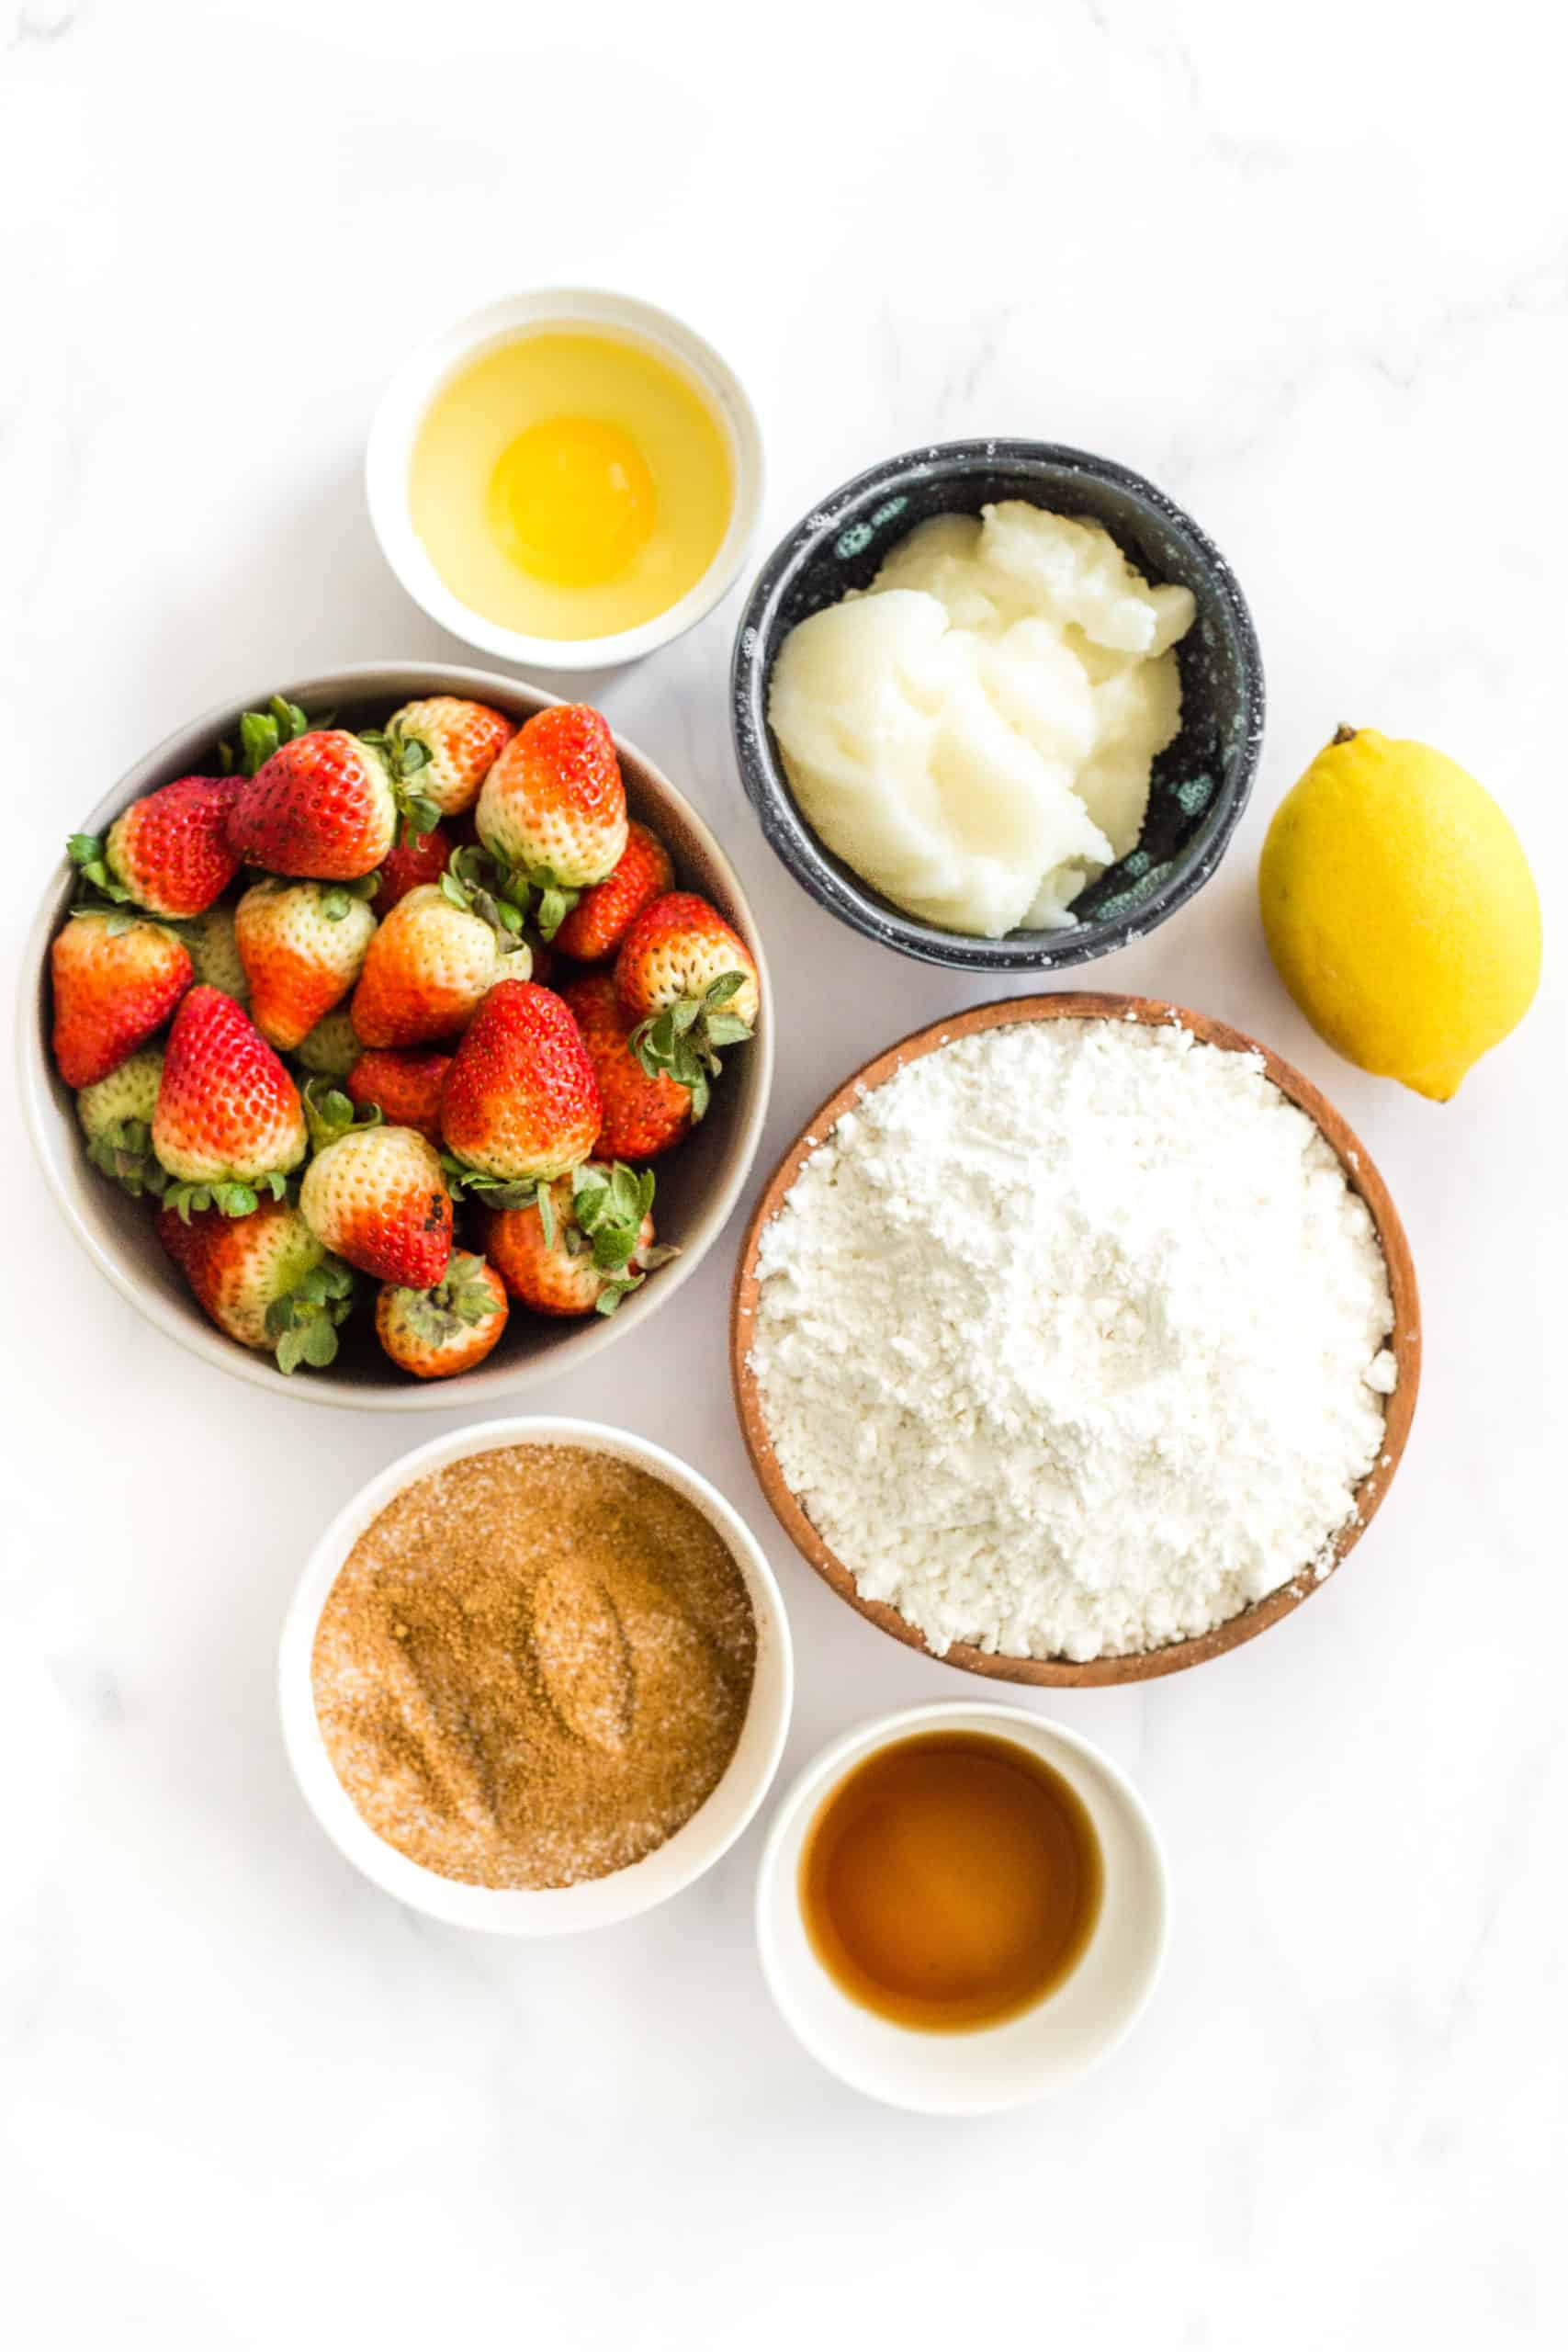 Ingredients for Gluten-Free Strawberry Crumb Bars (Dairy-Free)